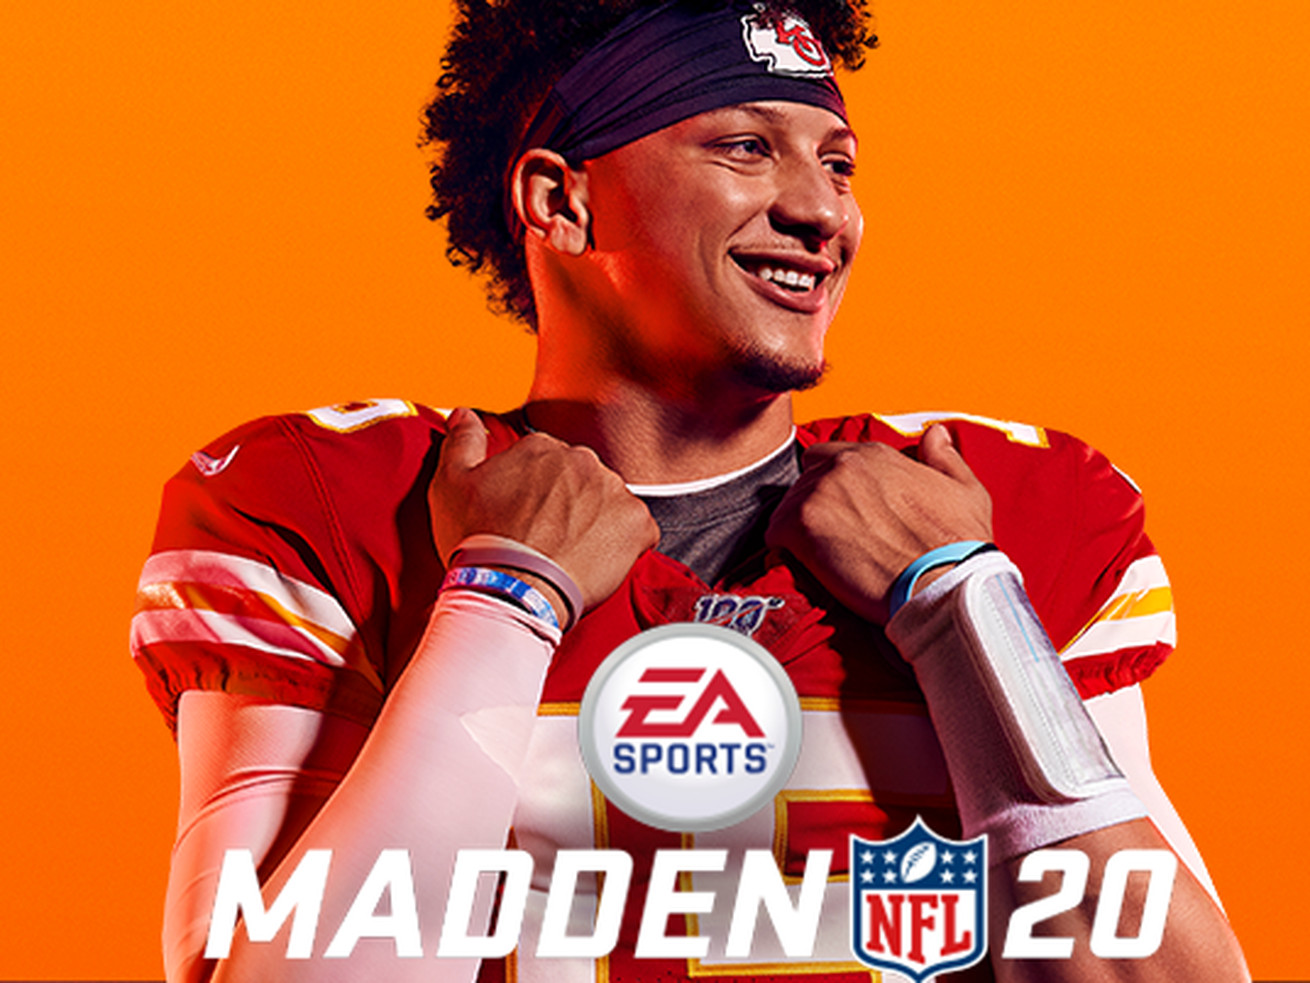 NFL, EA Sports agree to extension of Madden videogame franchise